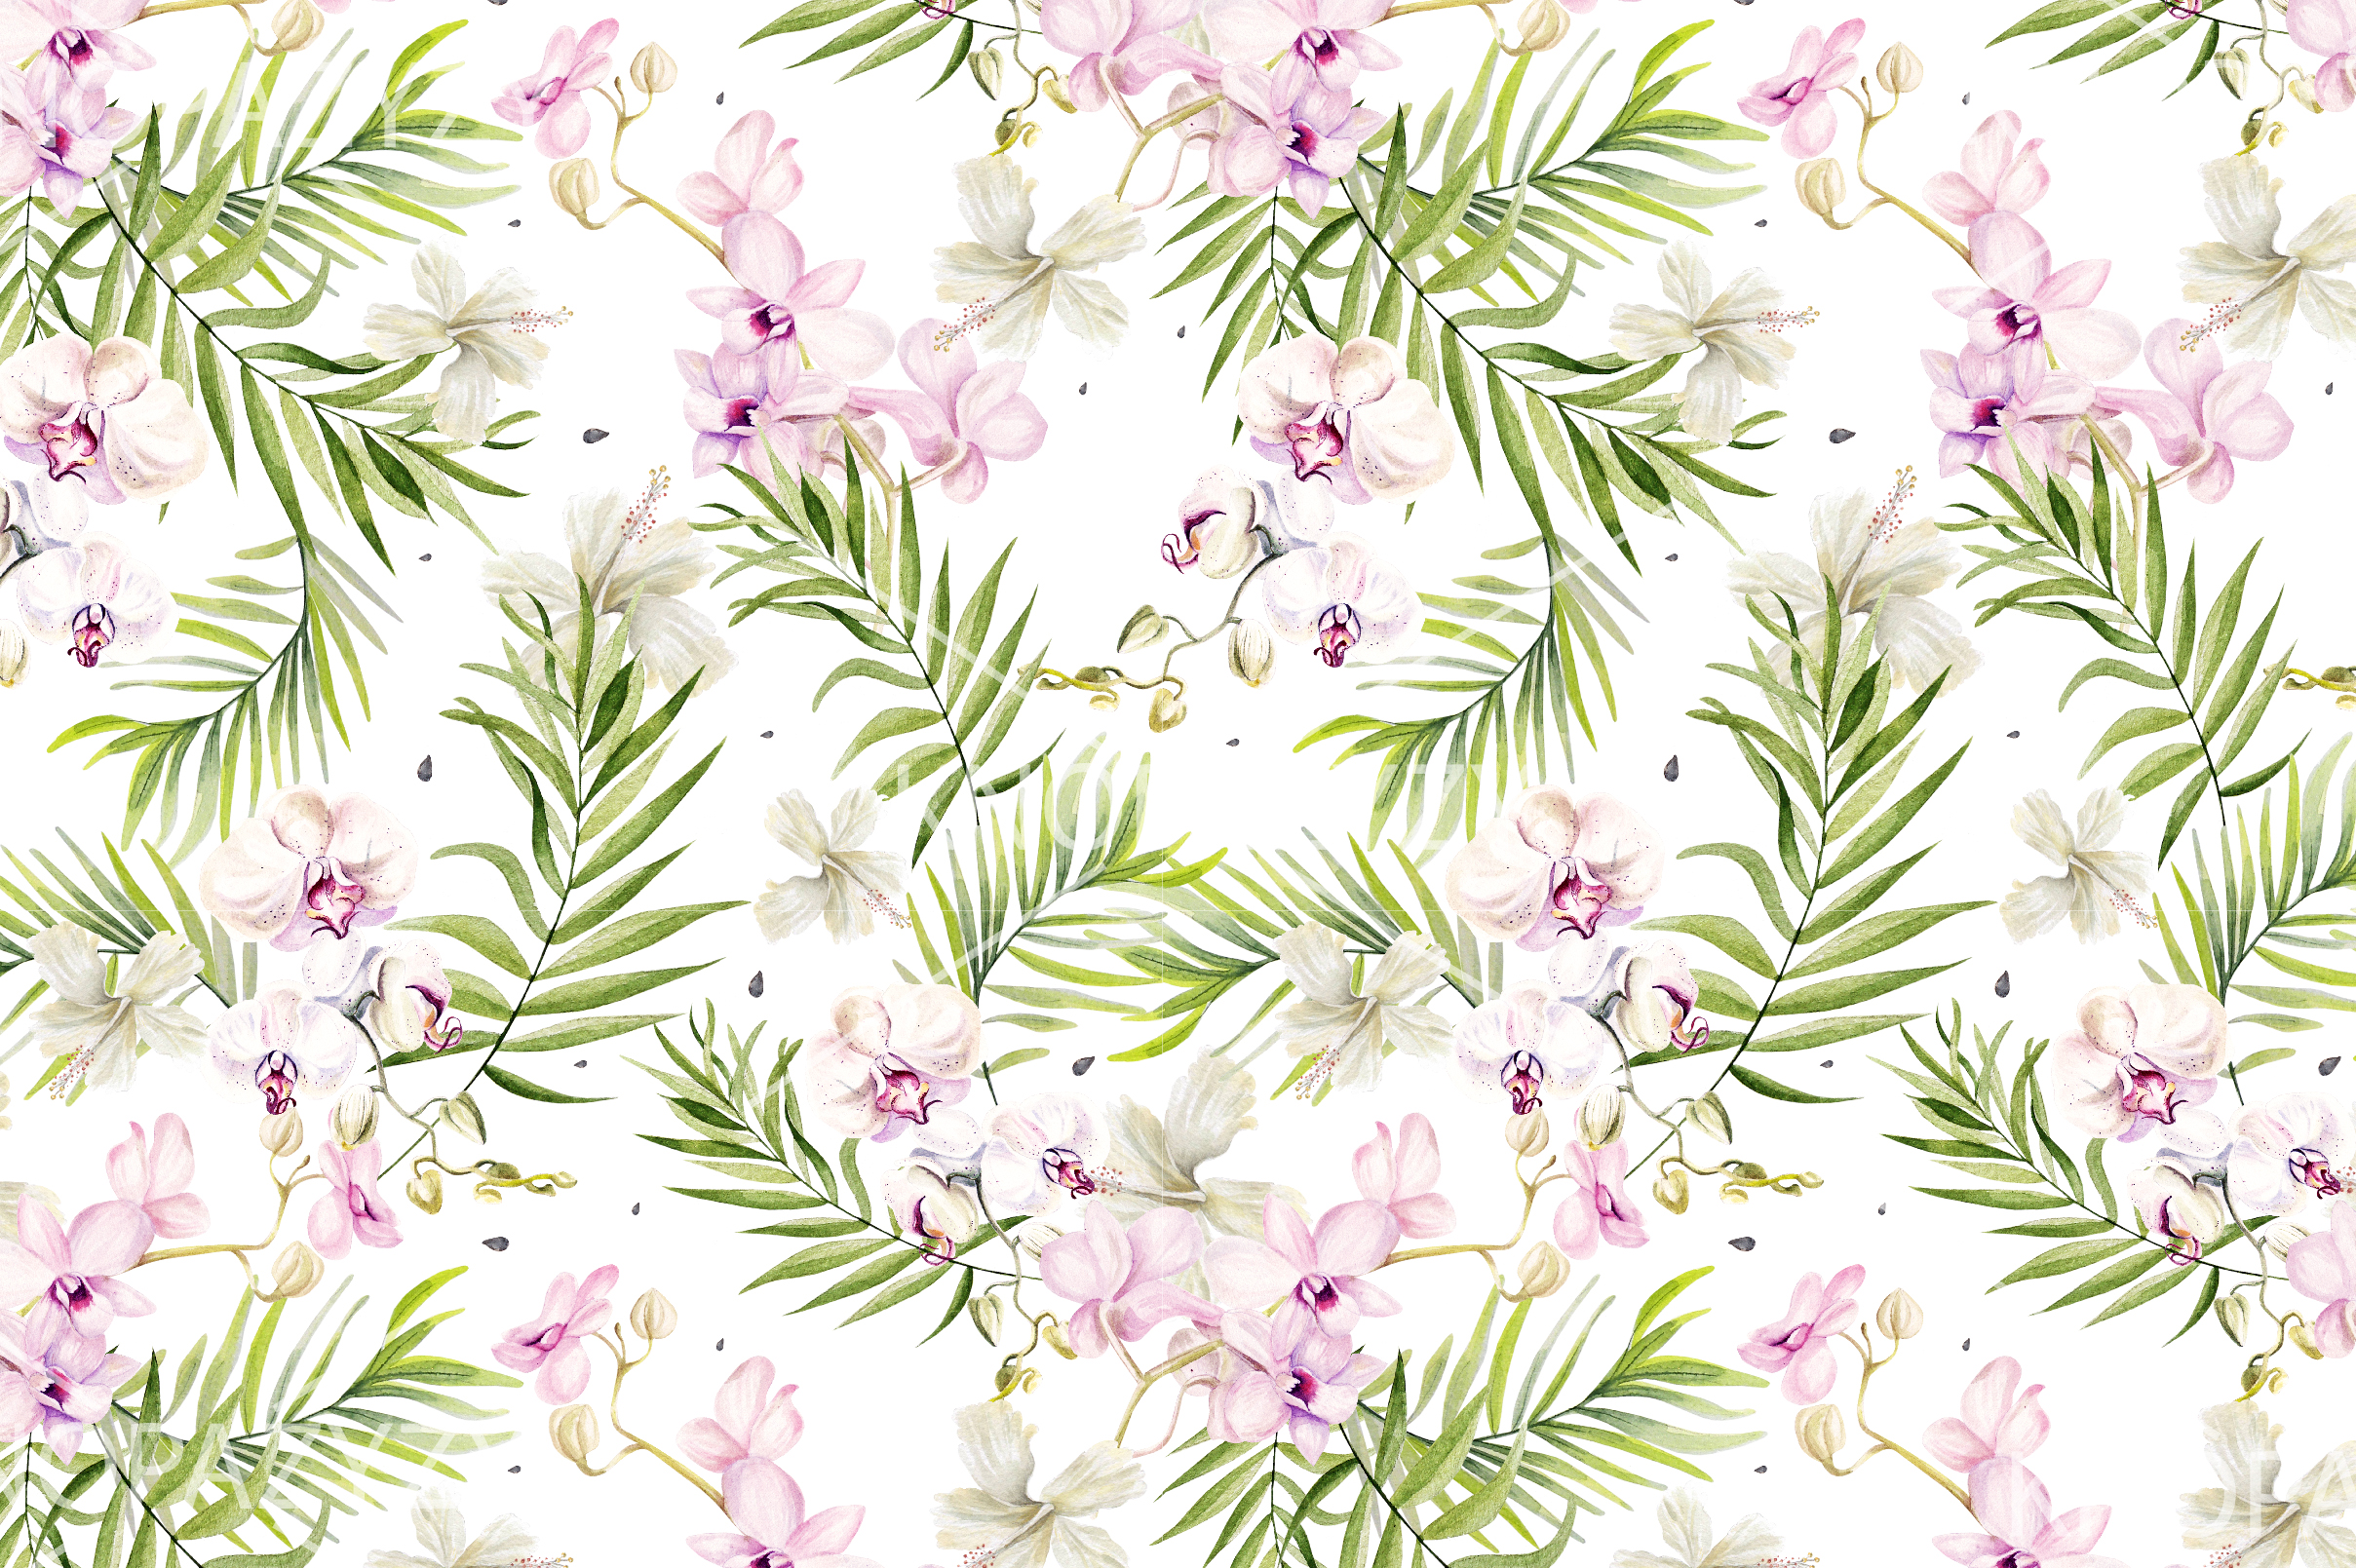 10 Hand Drawn Watercolor Pattern example image 11